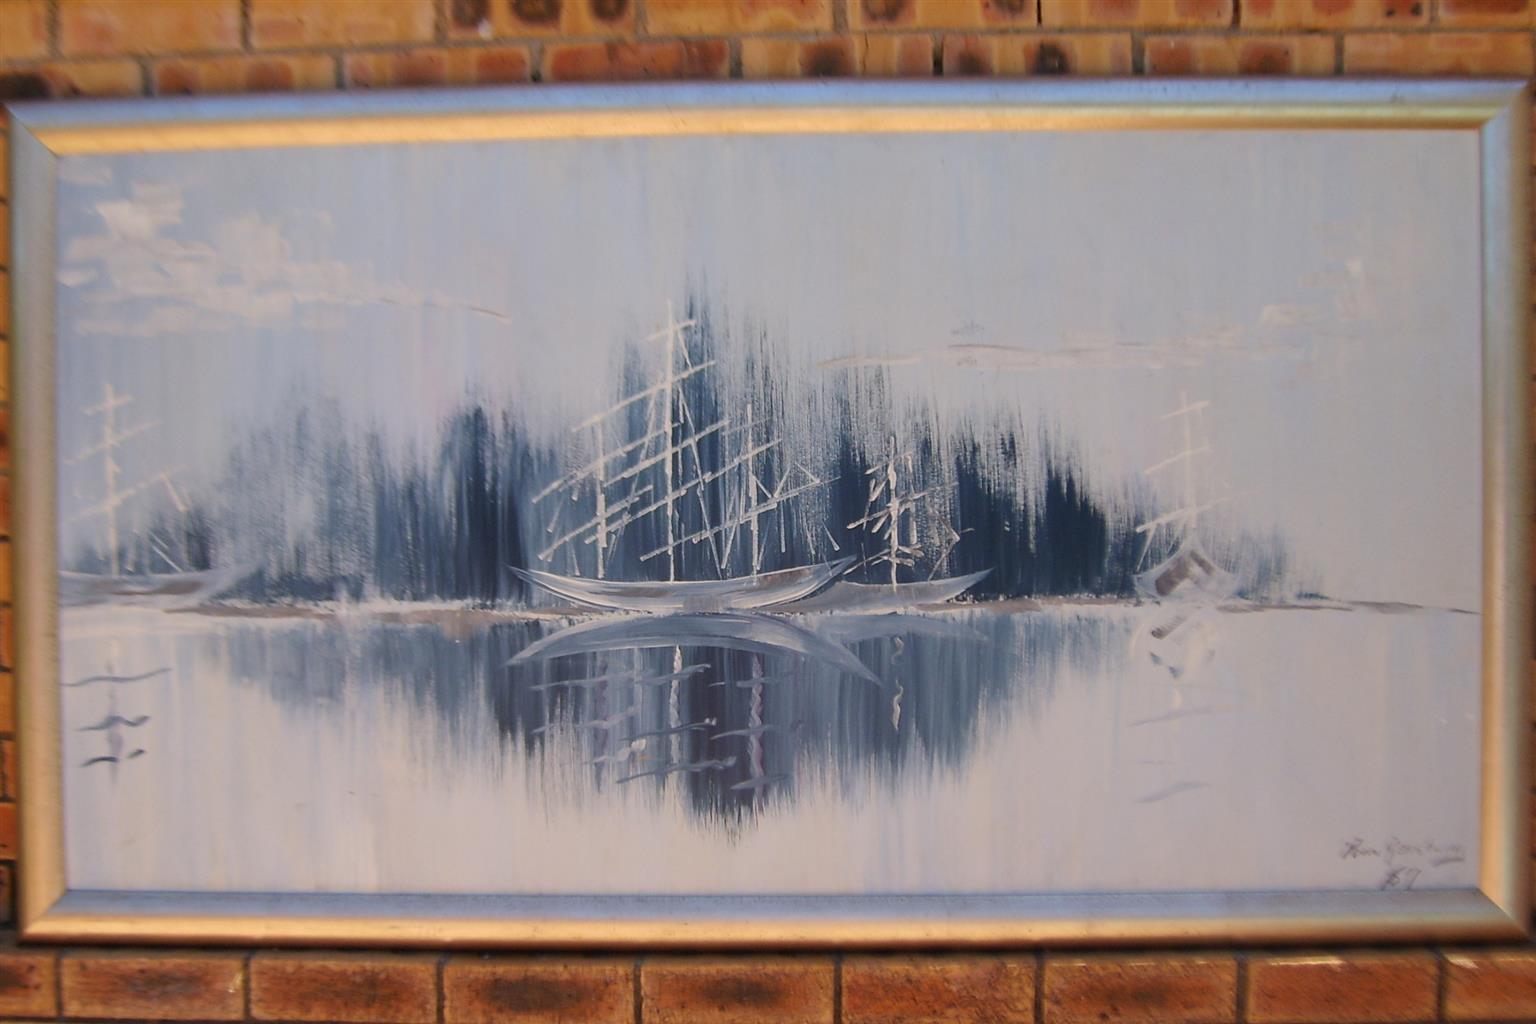 Paul Van Rensburg Boat Scene  Signed and Dated